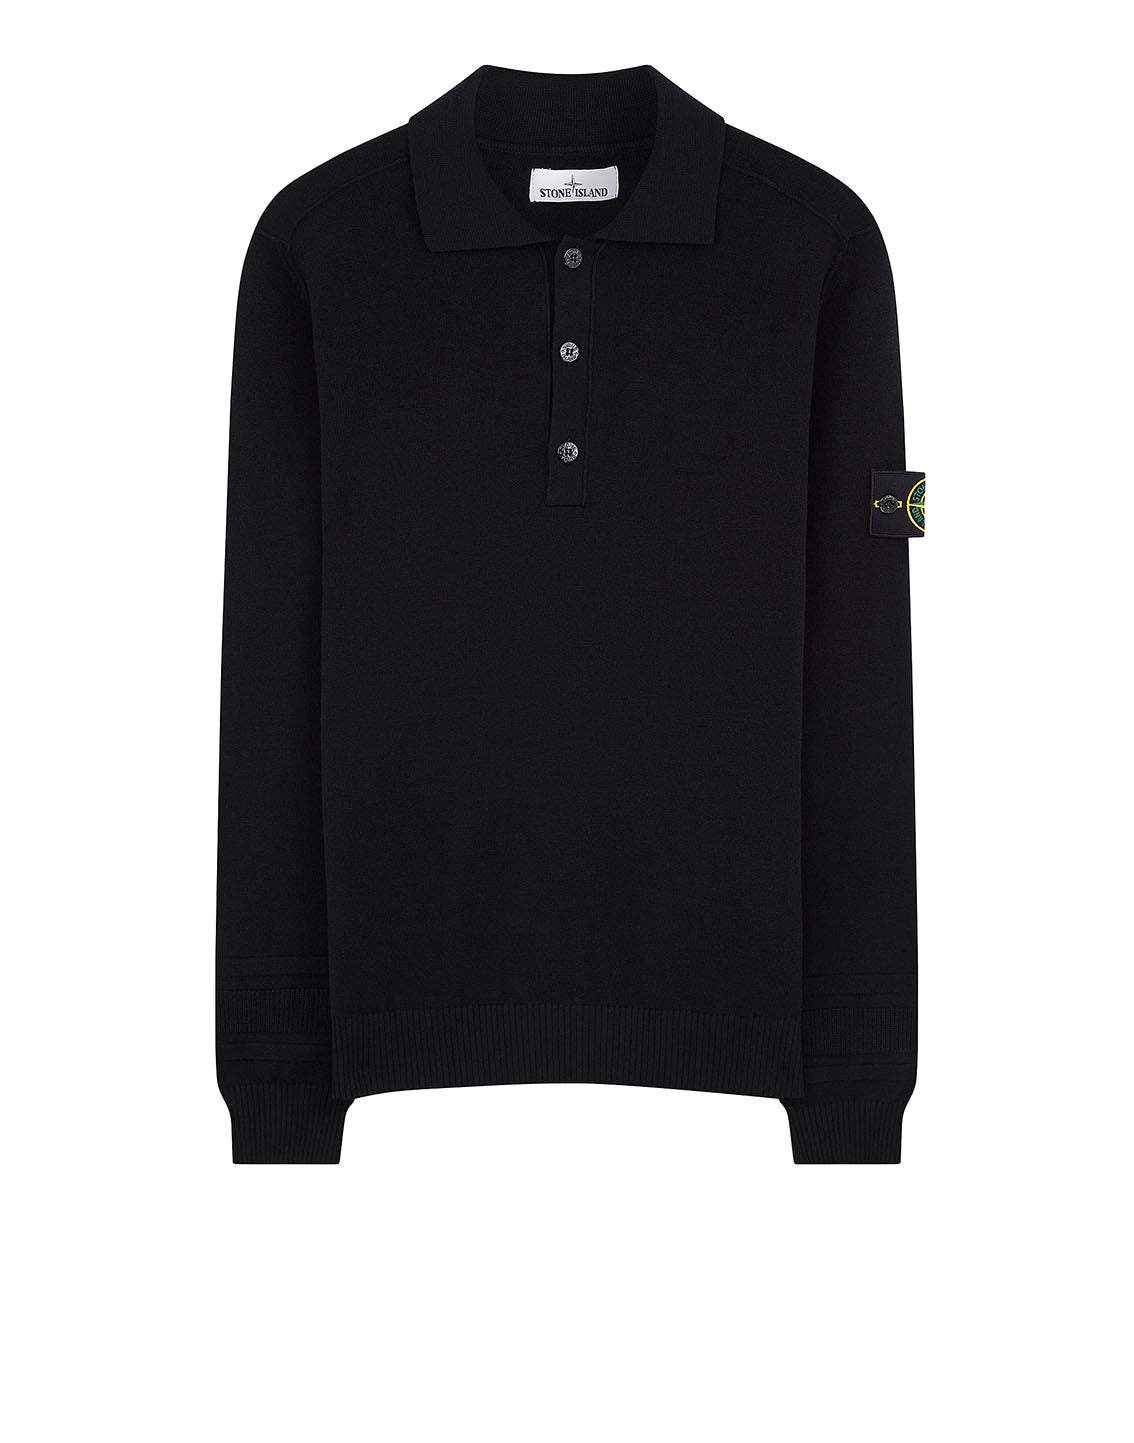 589A1 Wool Polo Shirt in Black